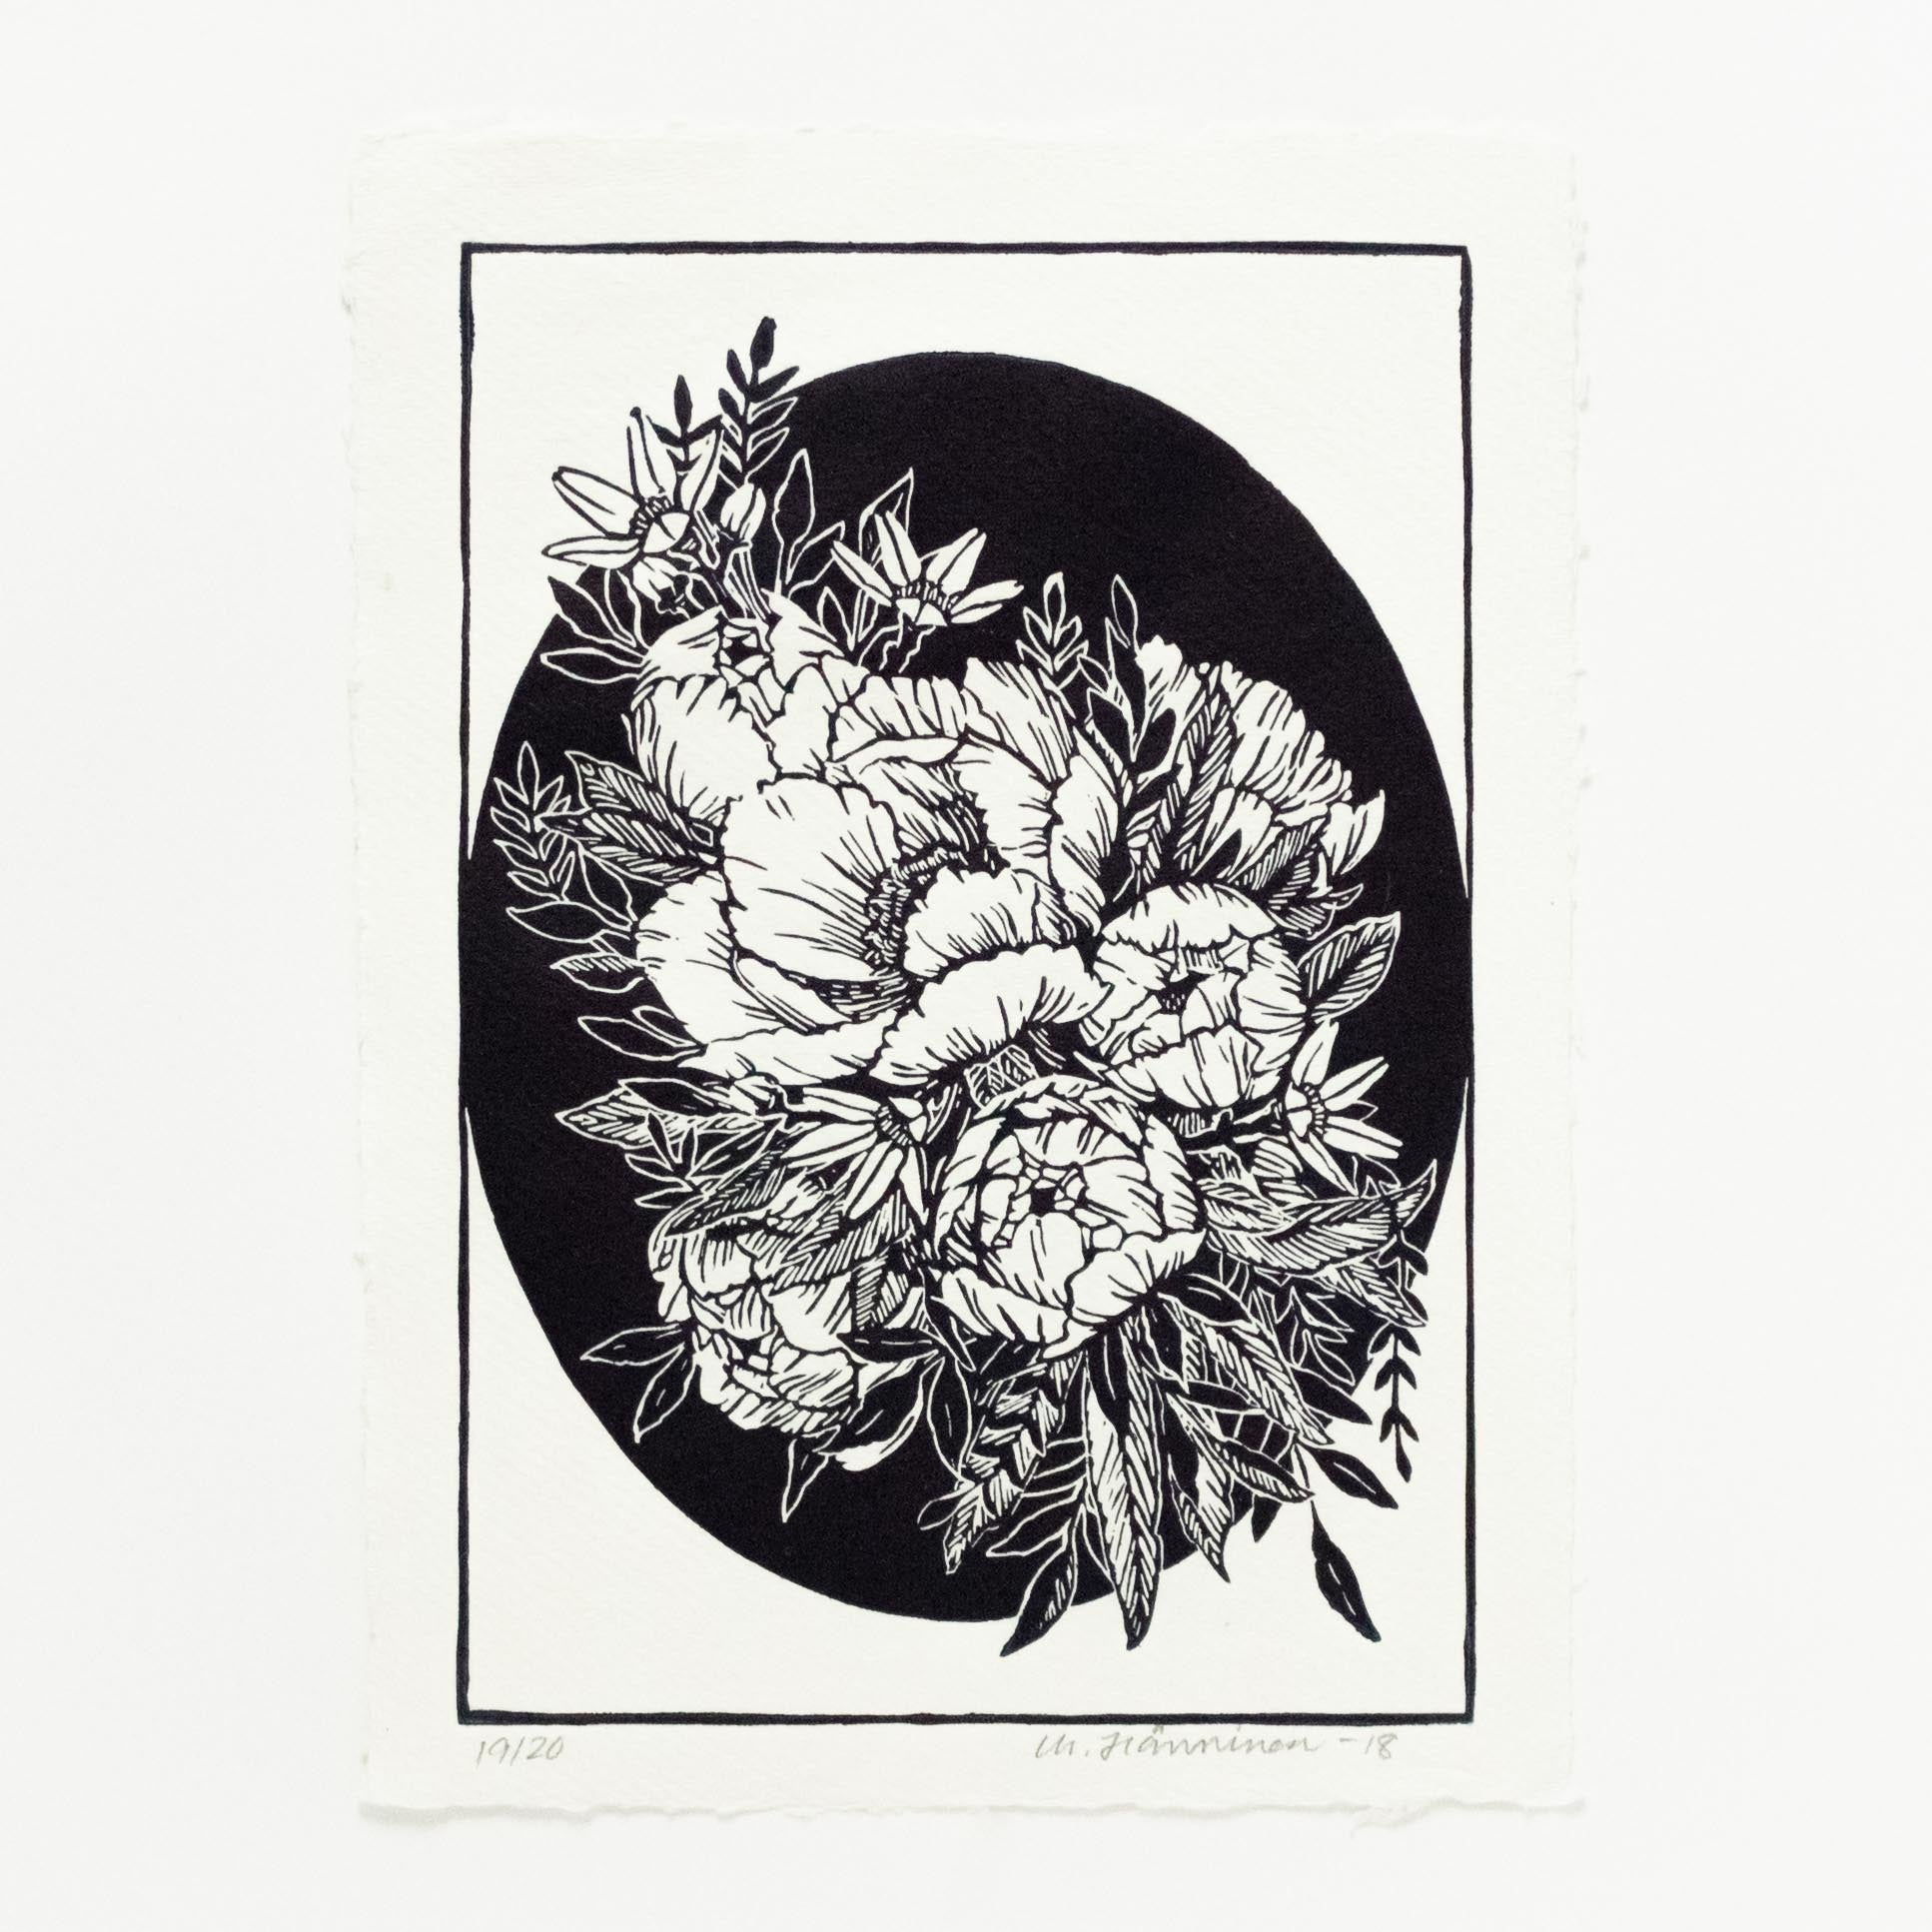 A floral linocut print of bucket of peonies and oval shaped background, printed in dark blue on white A4 cotton rag paper.